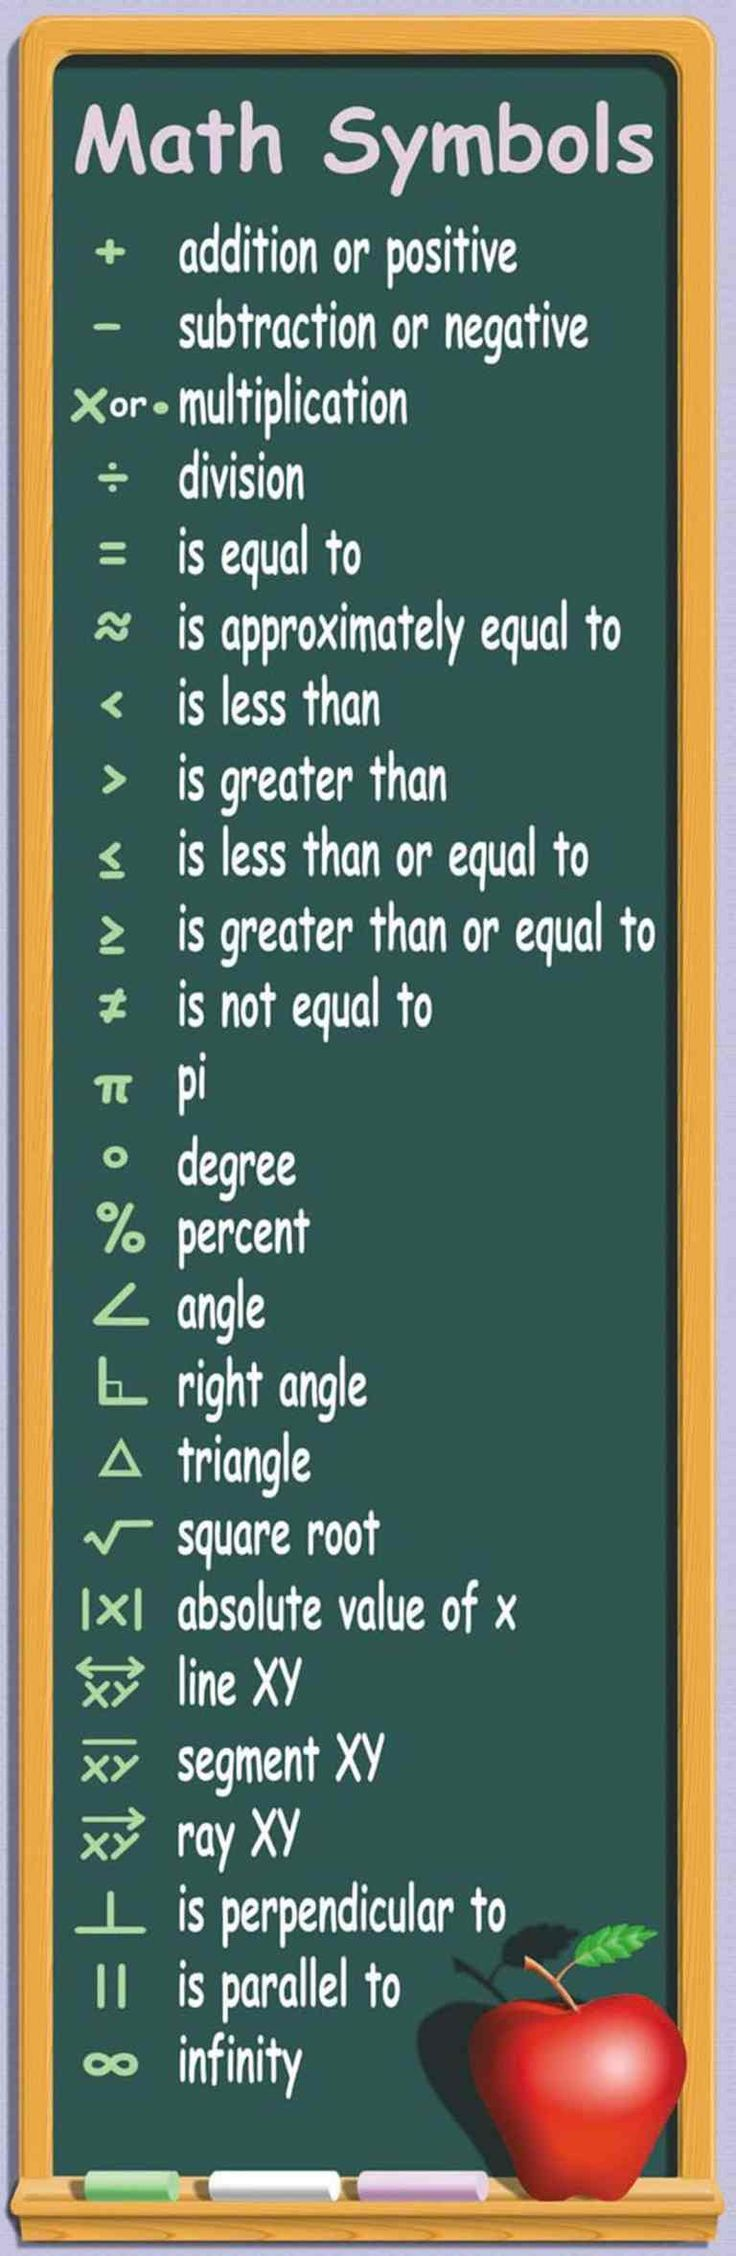 21 best Maths images on Pinterest | Education, Studying and Learning